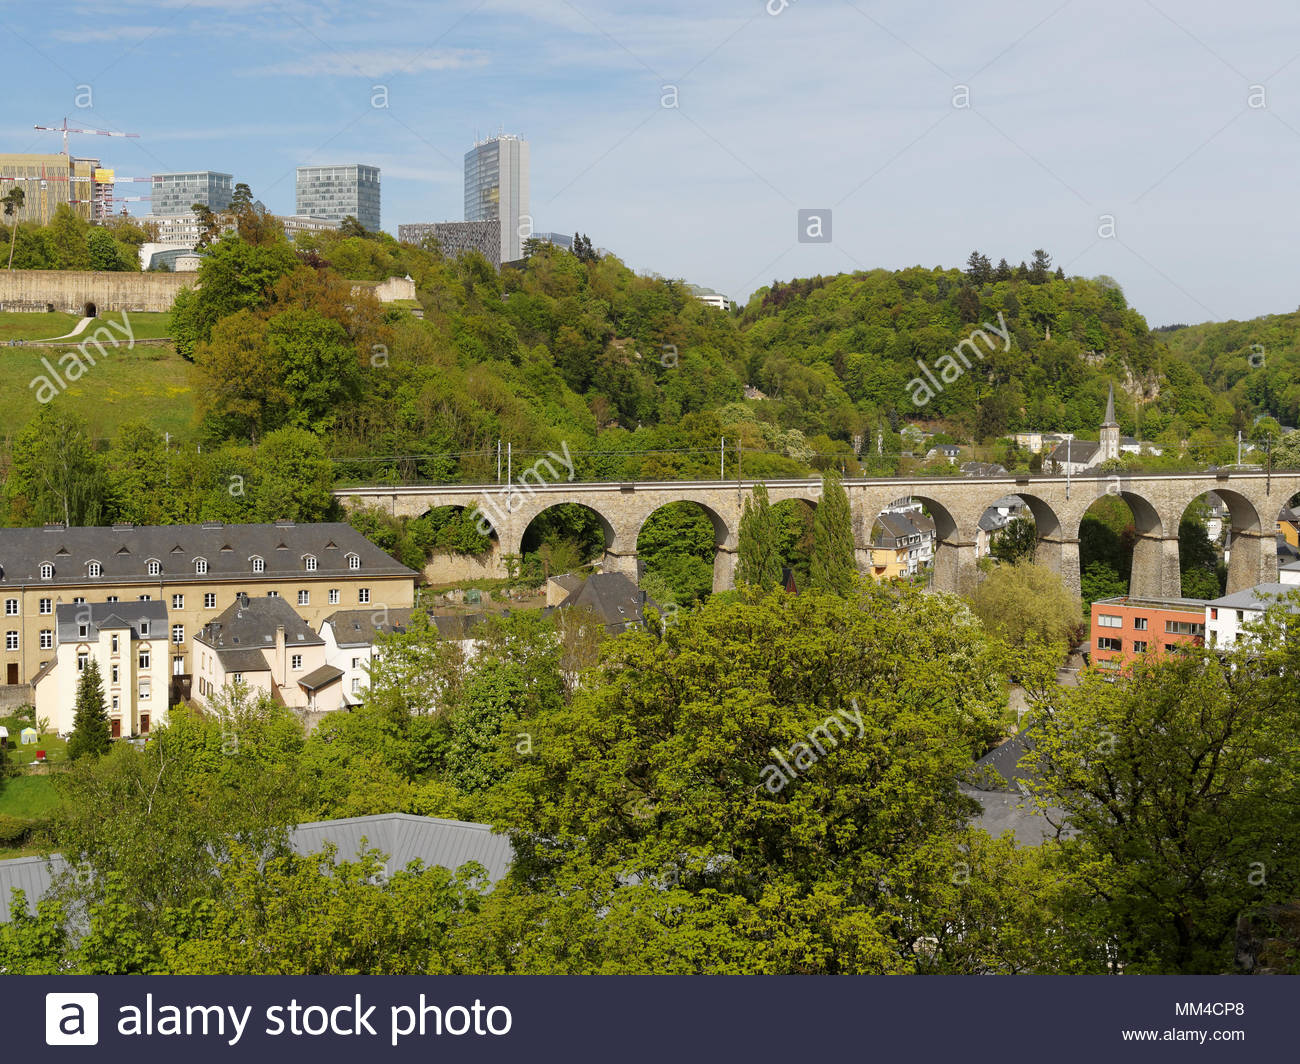 Pfaffenthal Railway viaduct, Kirchberg financial district, Luxembourg City with copy space - Stock Image